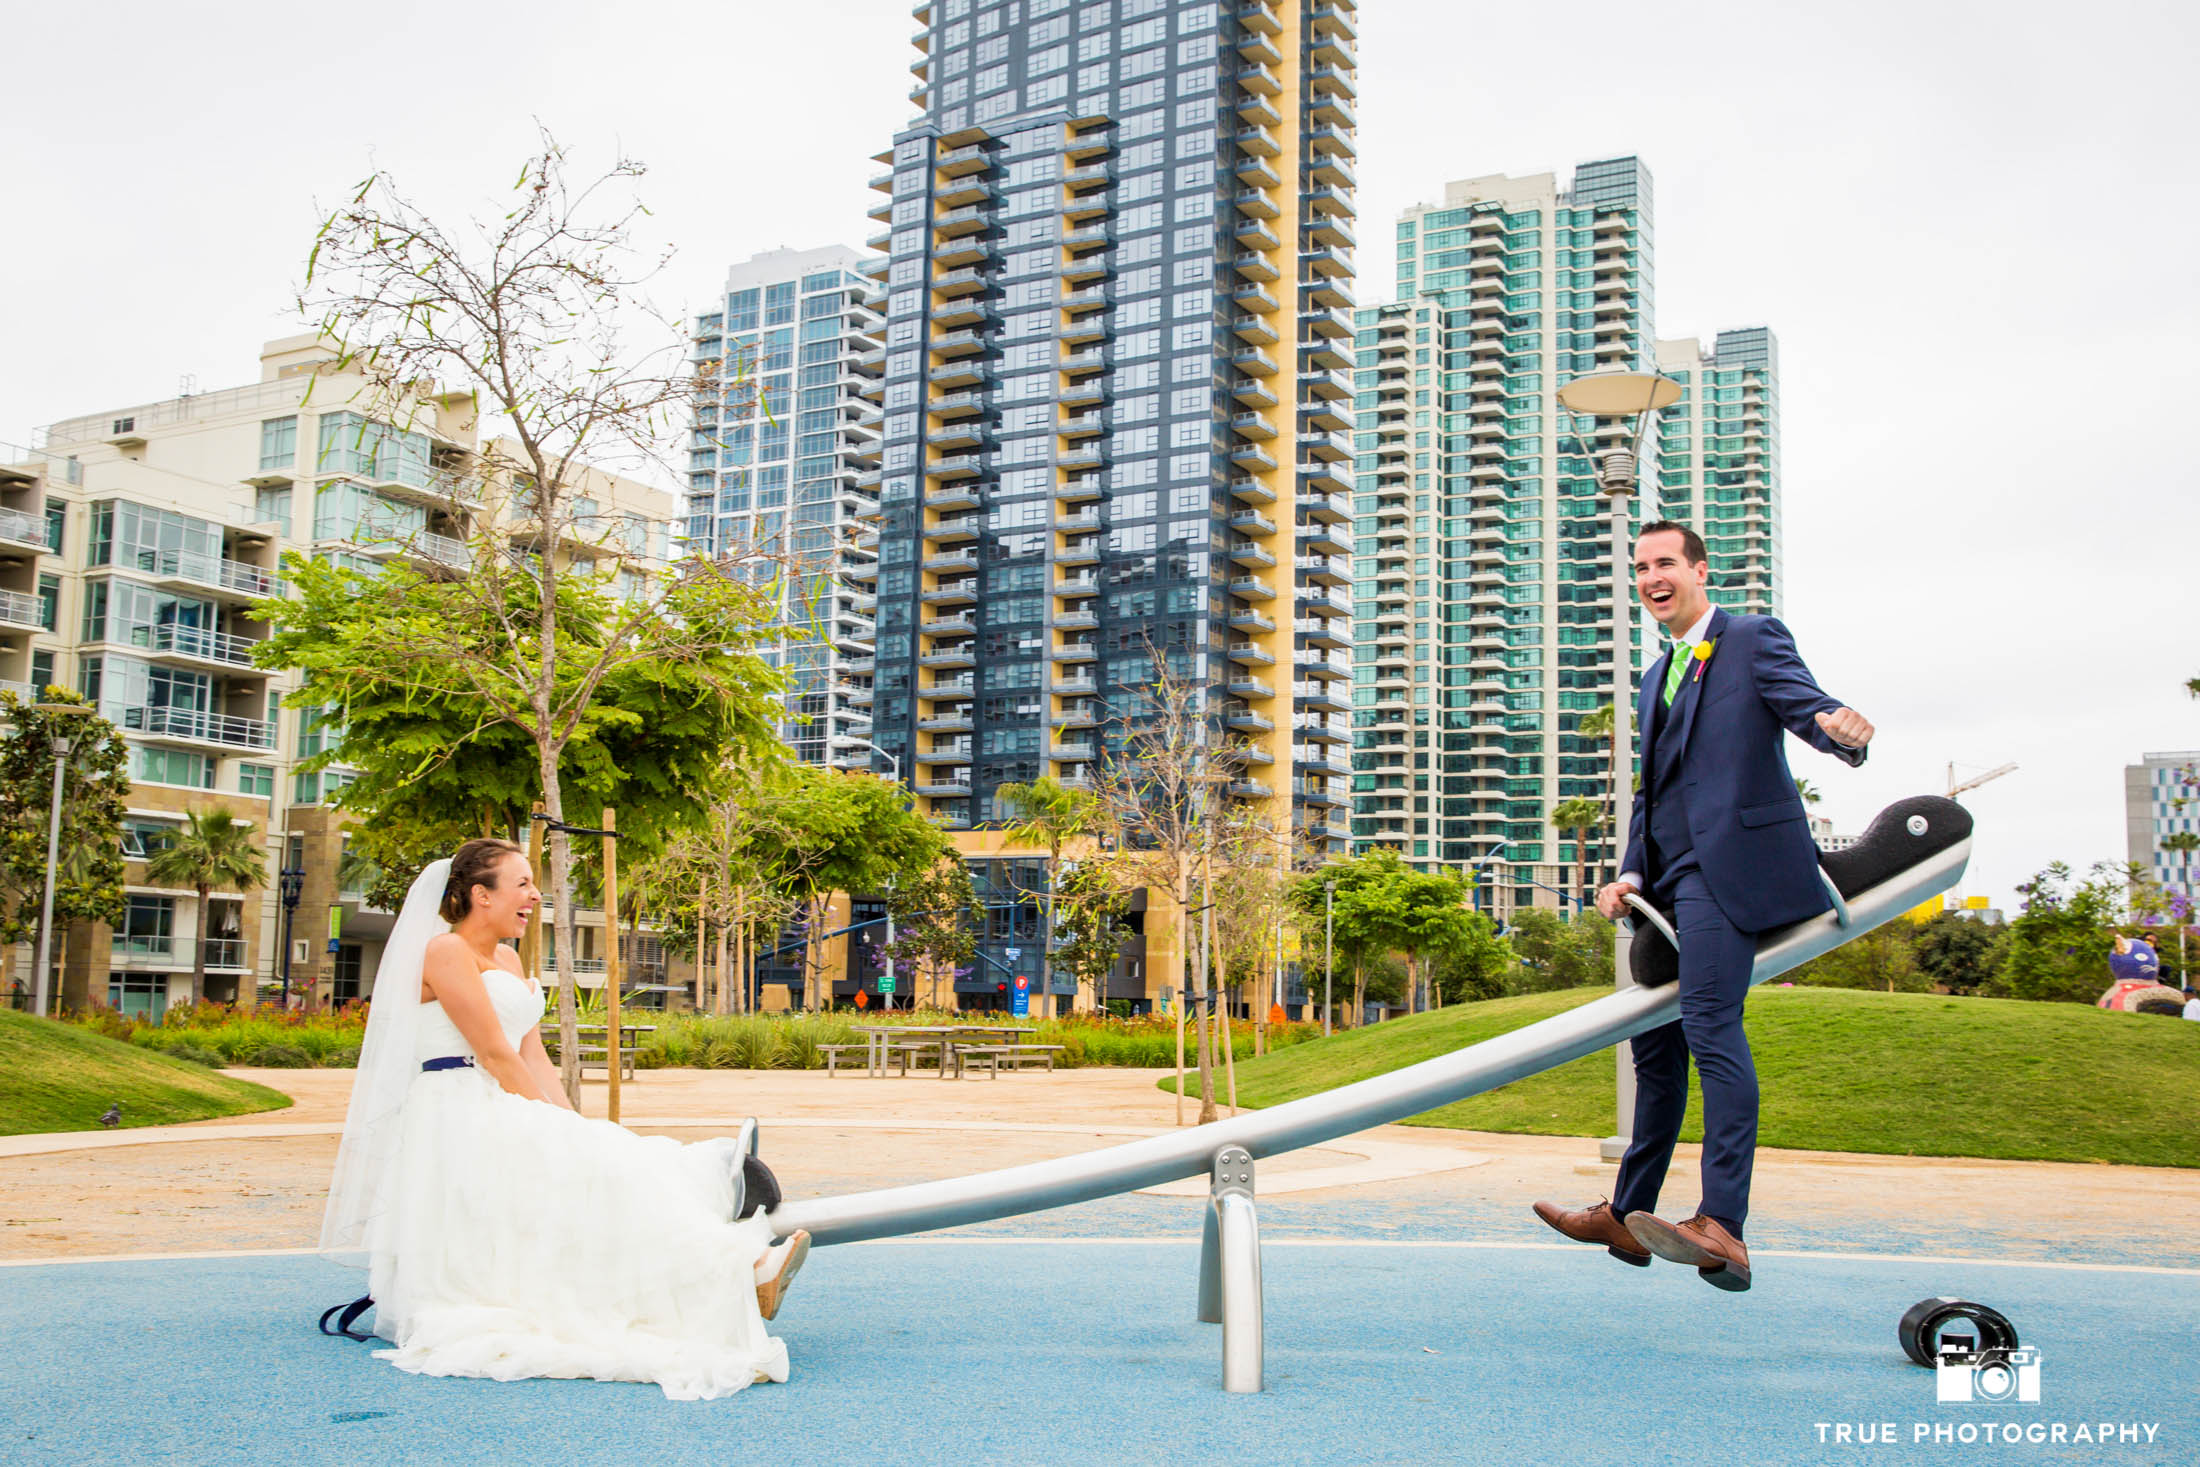 Bride and Groom on a seesaw